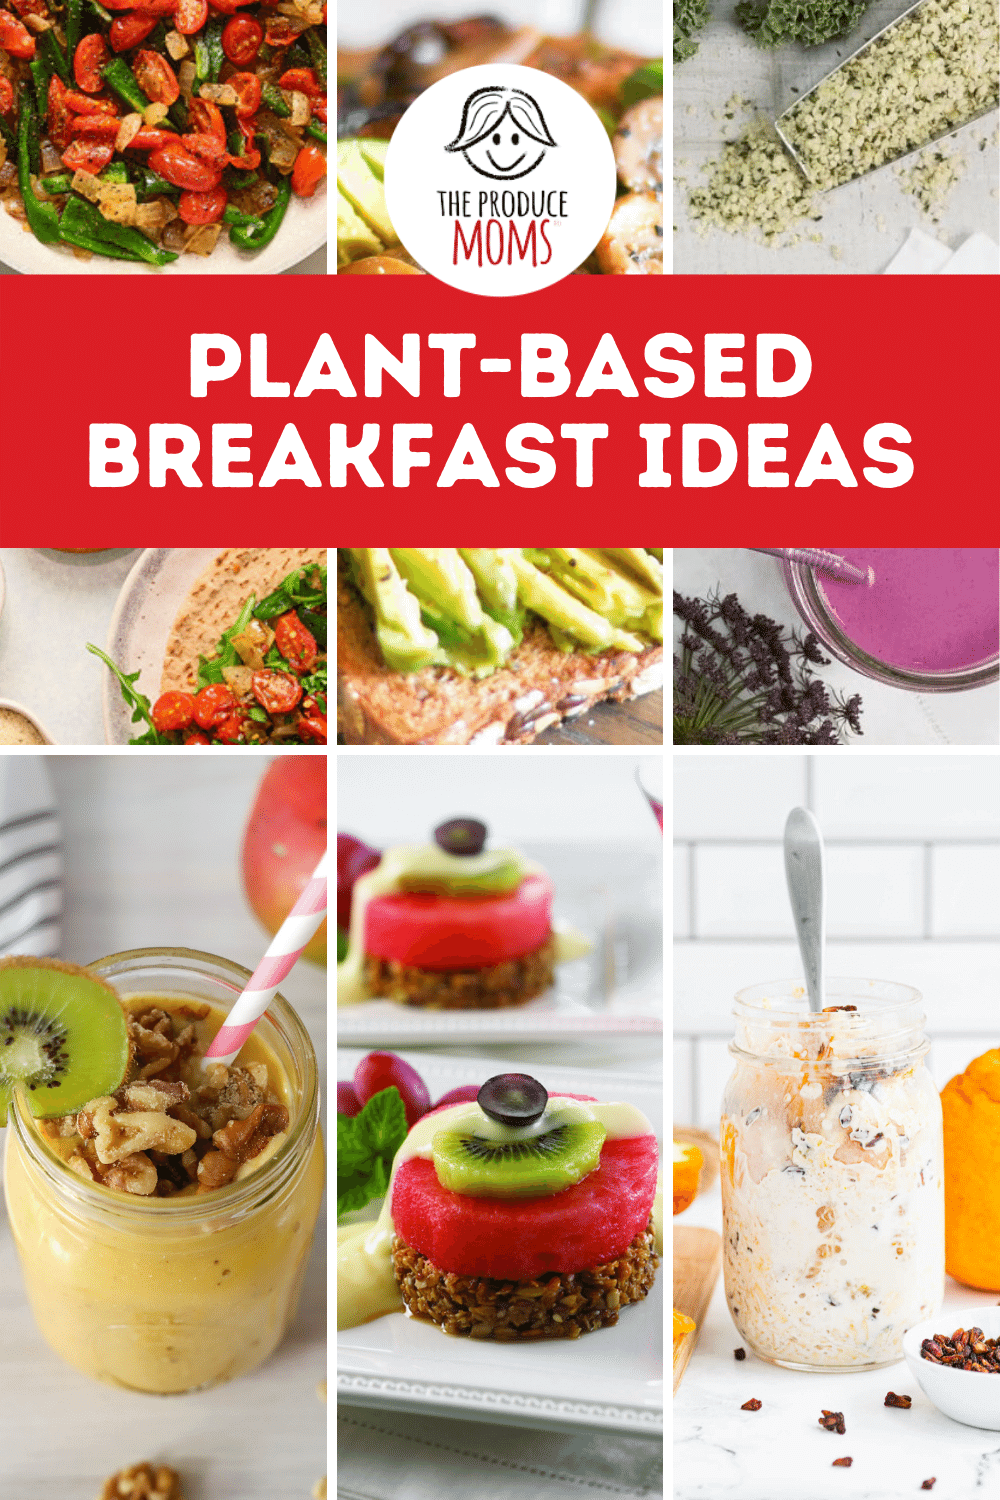 Plant-Based Breakfast Ideas